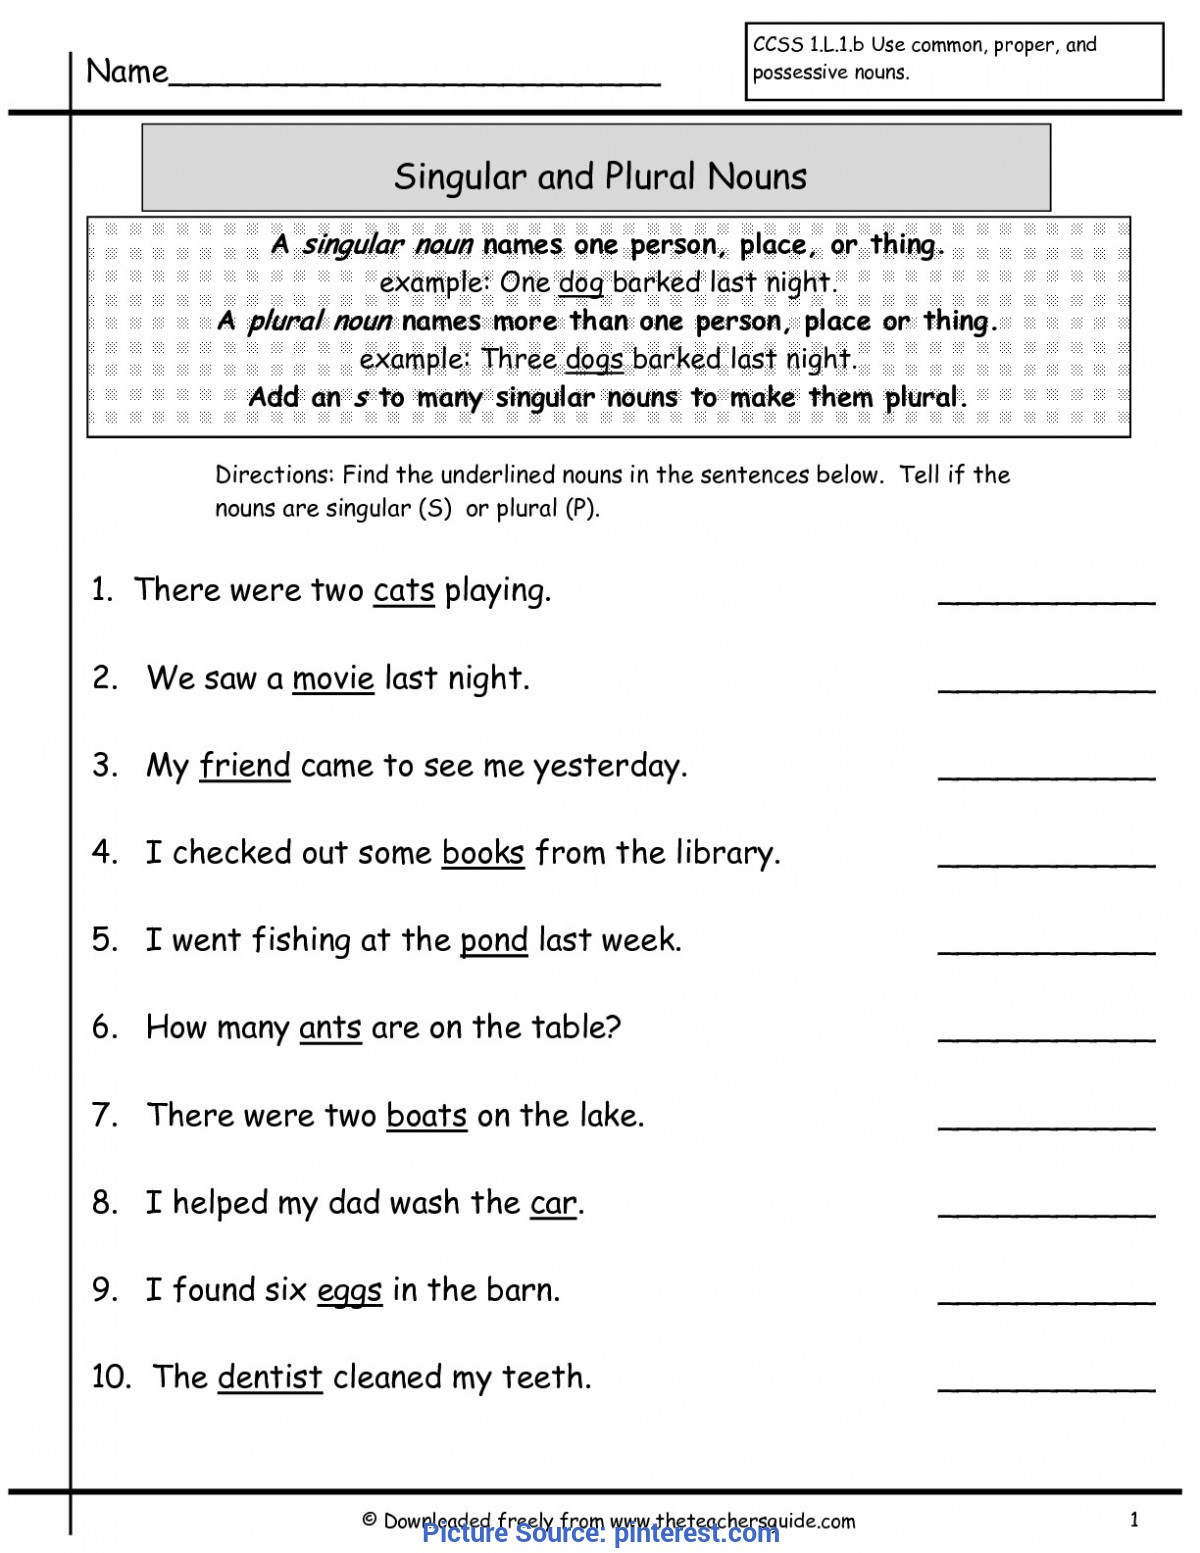 Grammar Worksheet First Grade Fresh 1st Grade Grammar Lesson Plans Grammar Worksheets 3rd